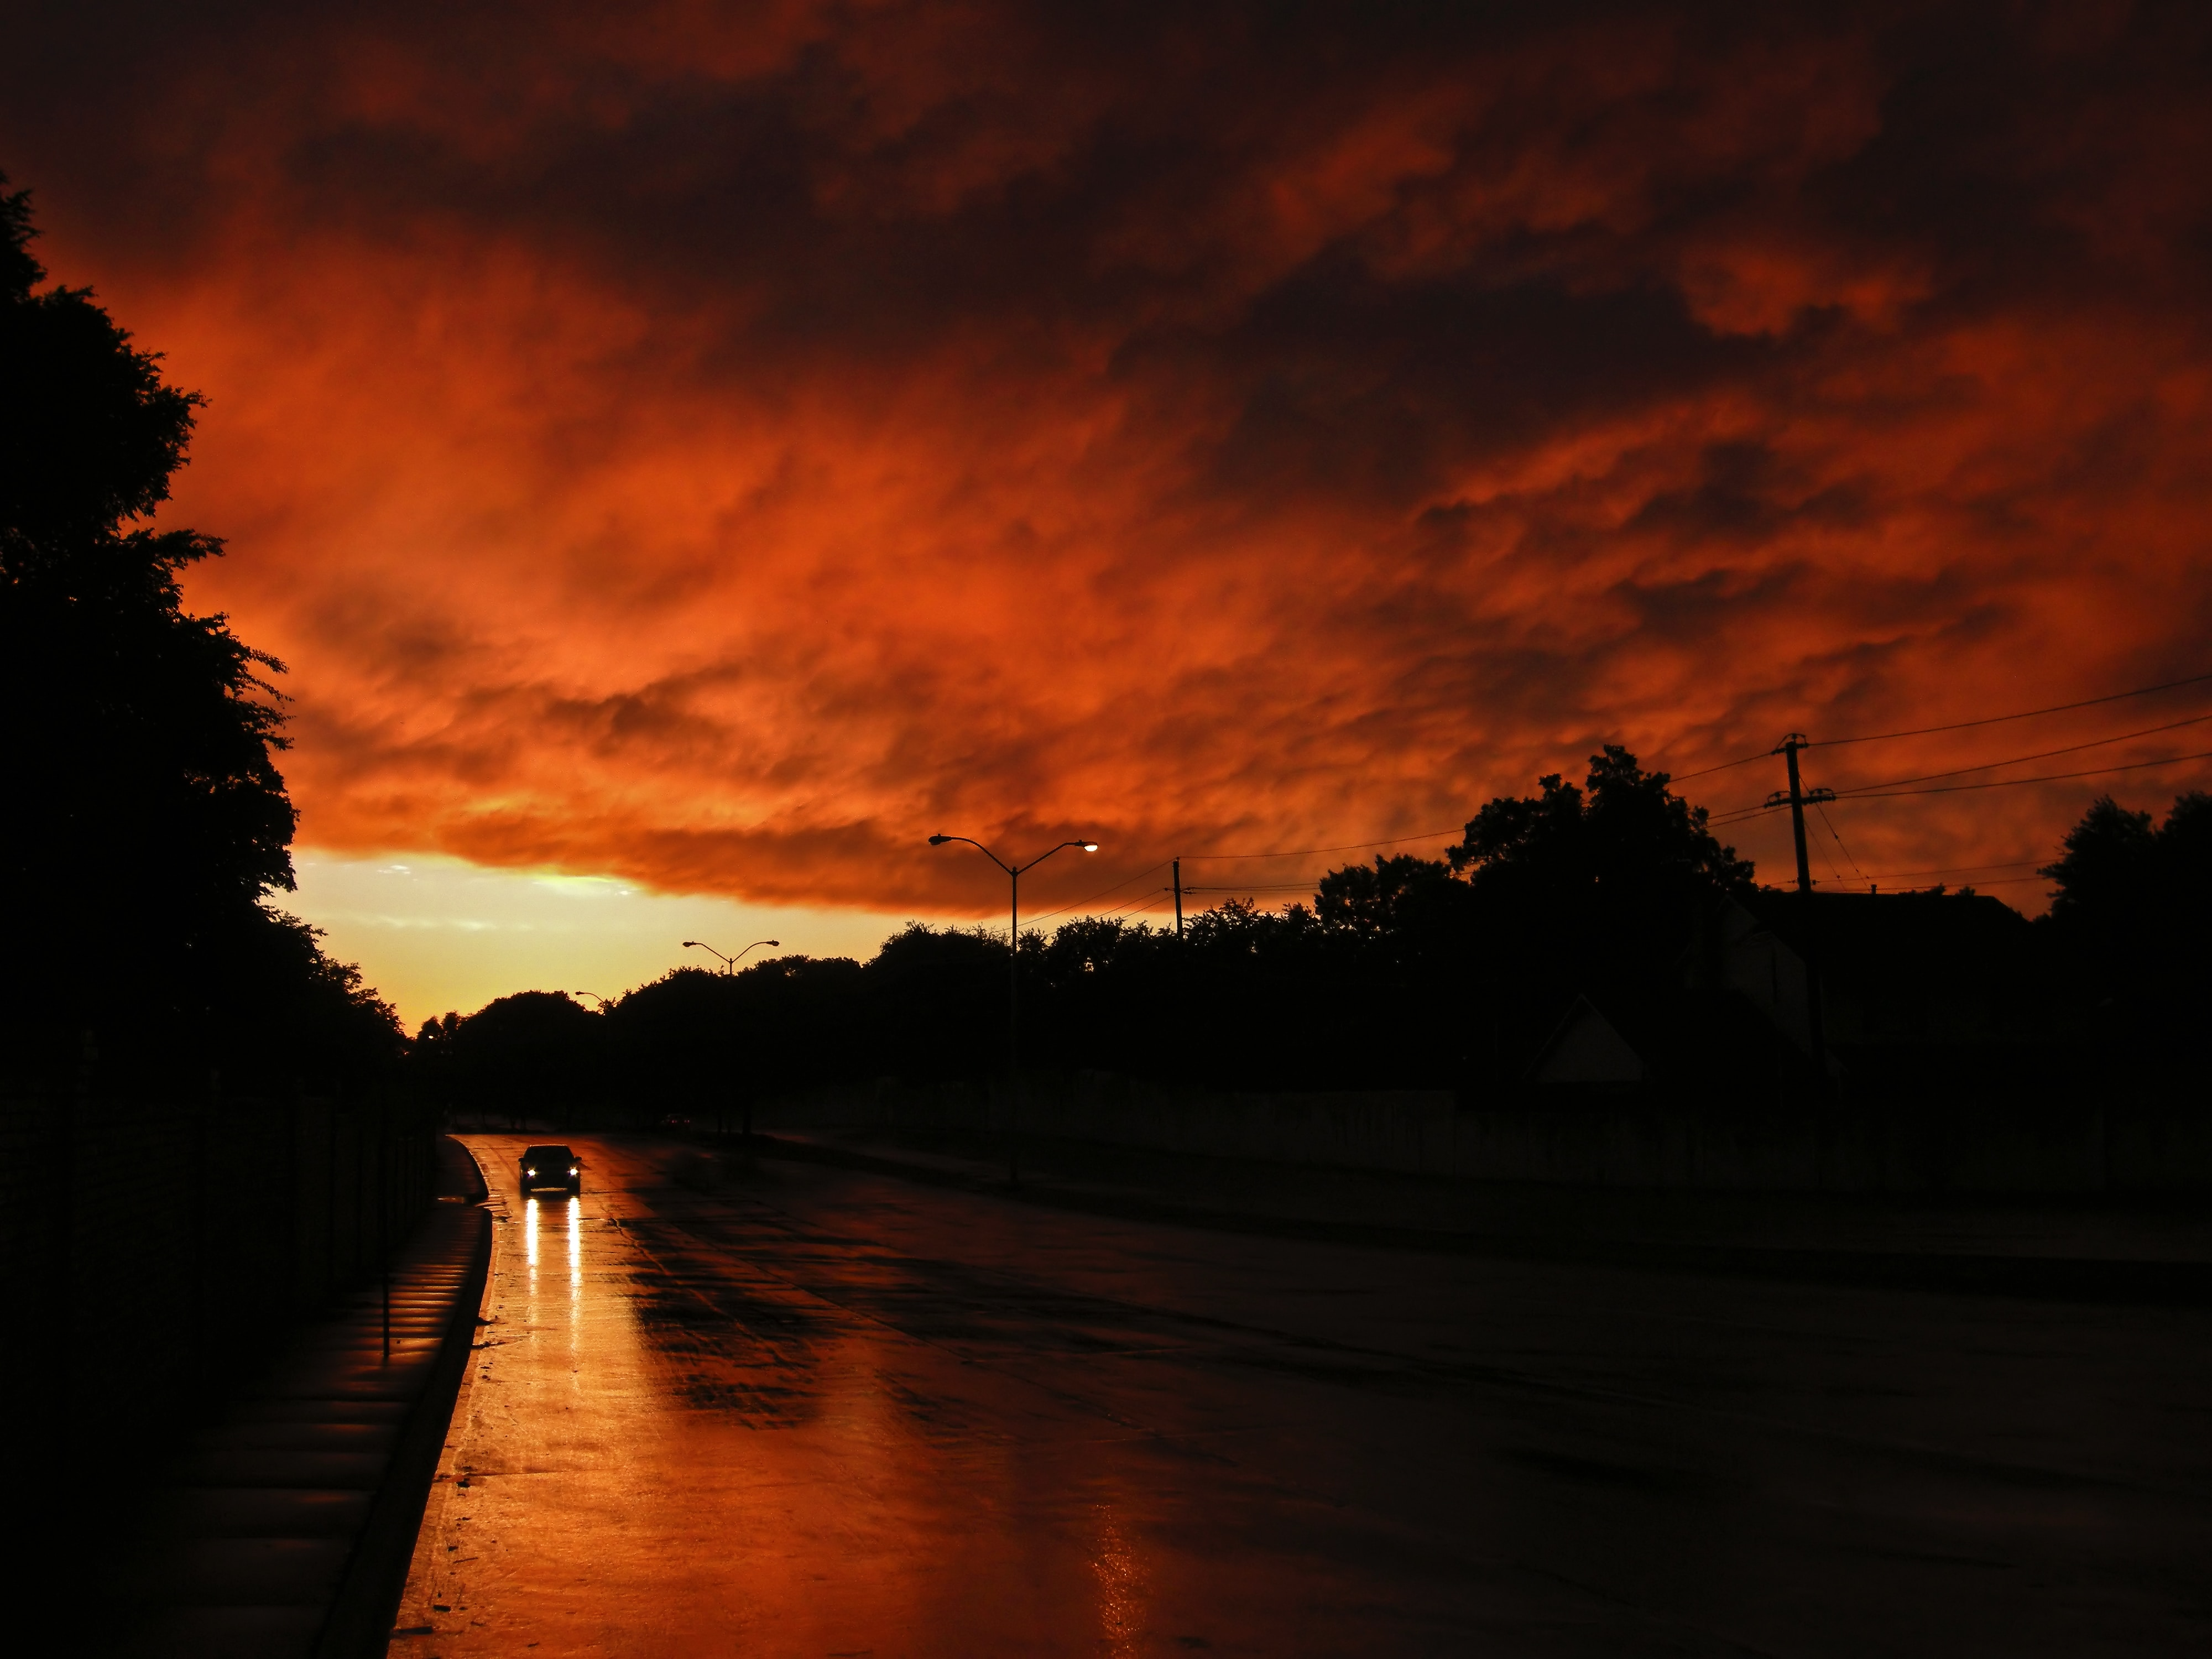 151480 download wallpaper Dark, Road, Car, Machine, Dusk, Twilight screensavers and pictures for free